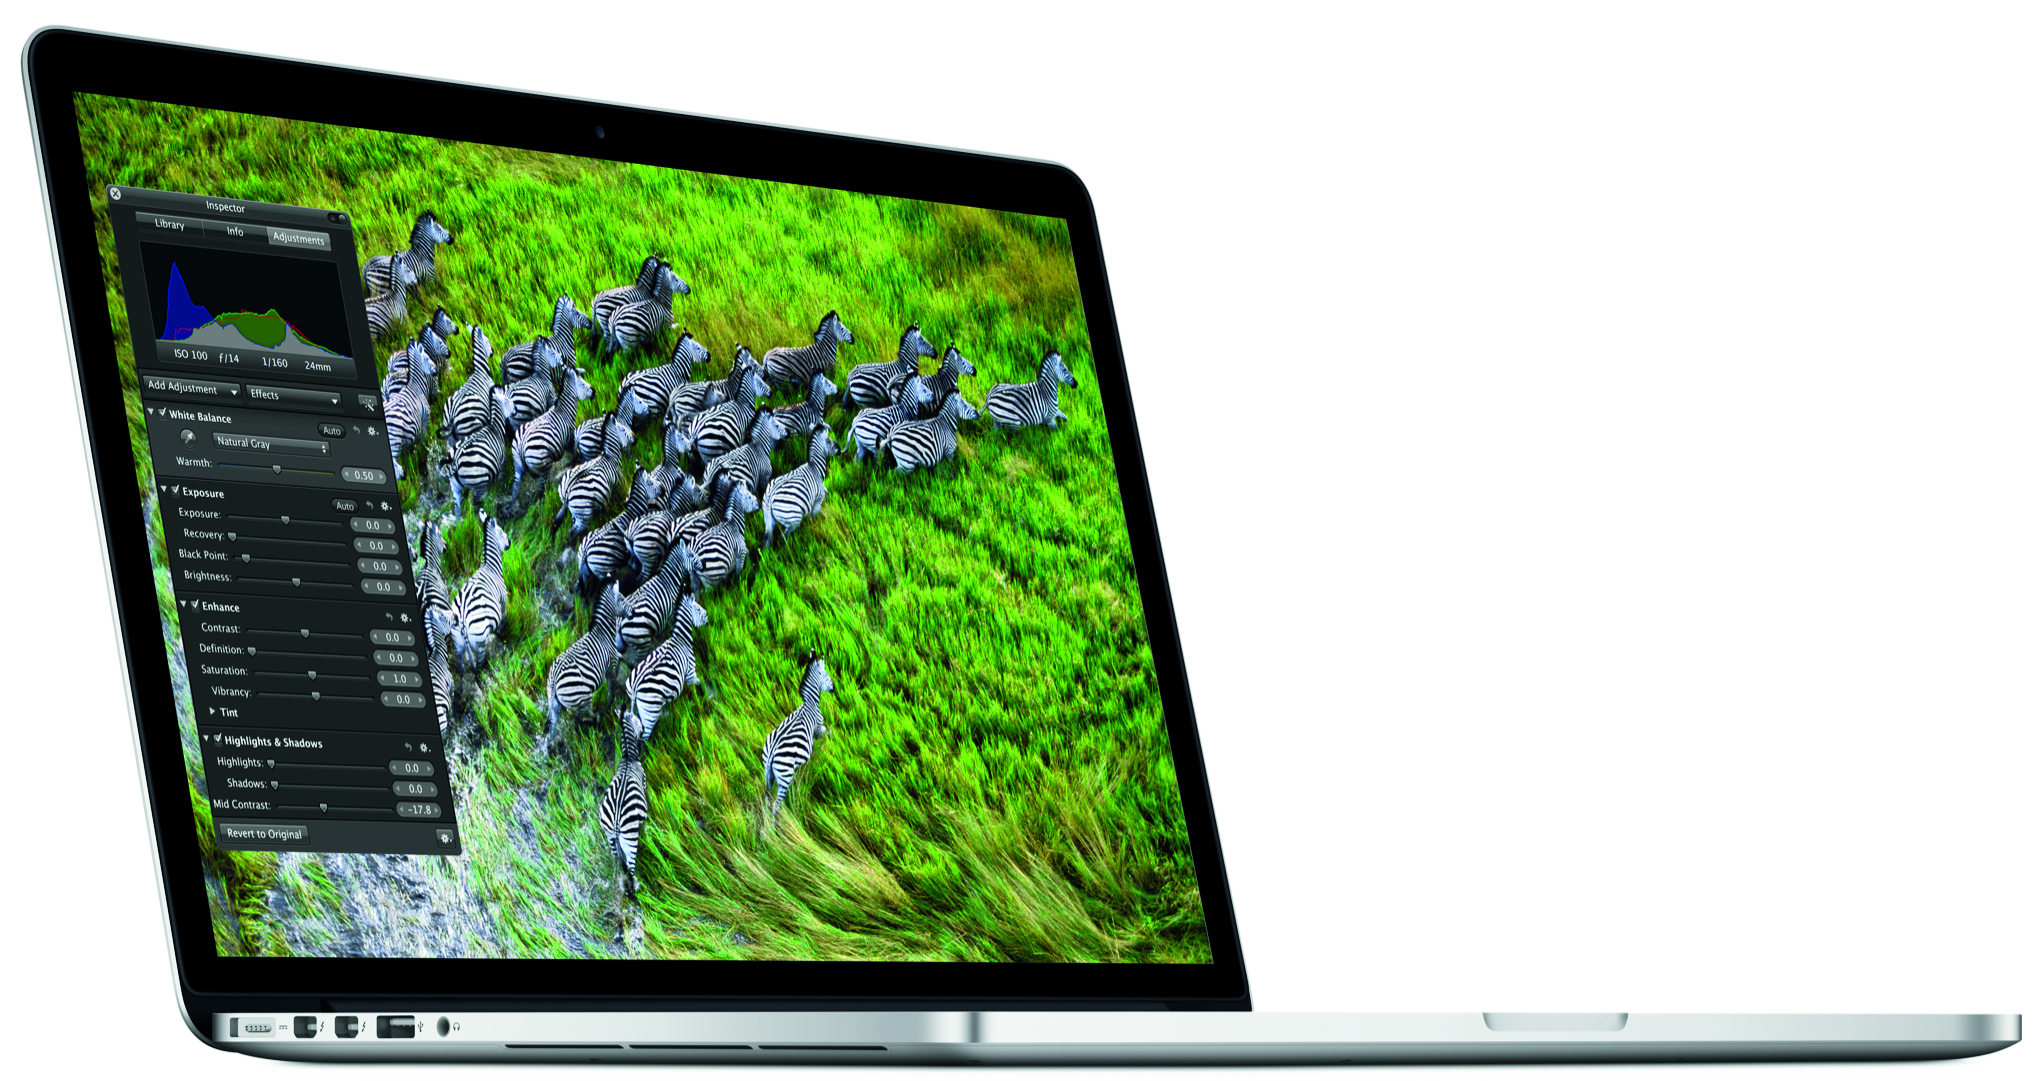 macbook-pro-retina-front-supportnet-80.png?nocache=1343813140392